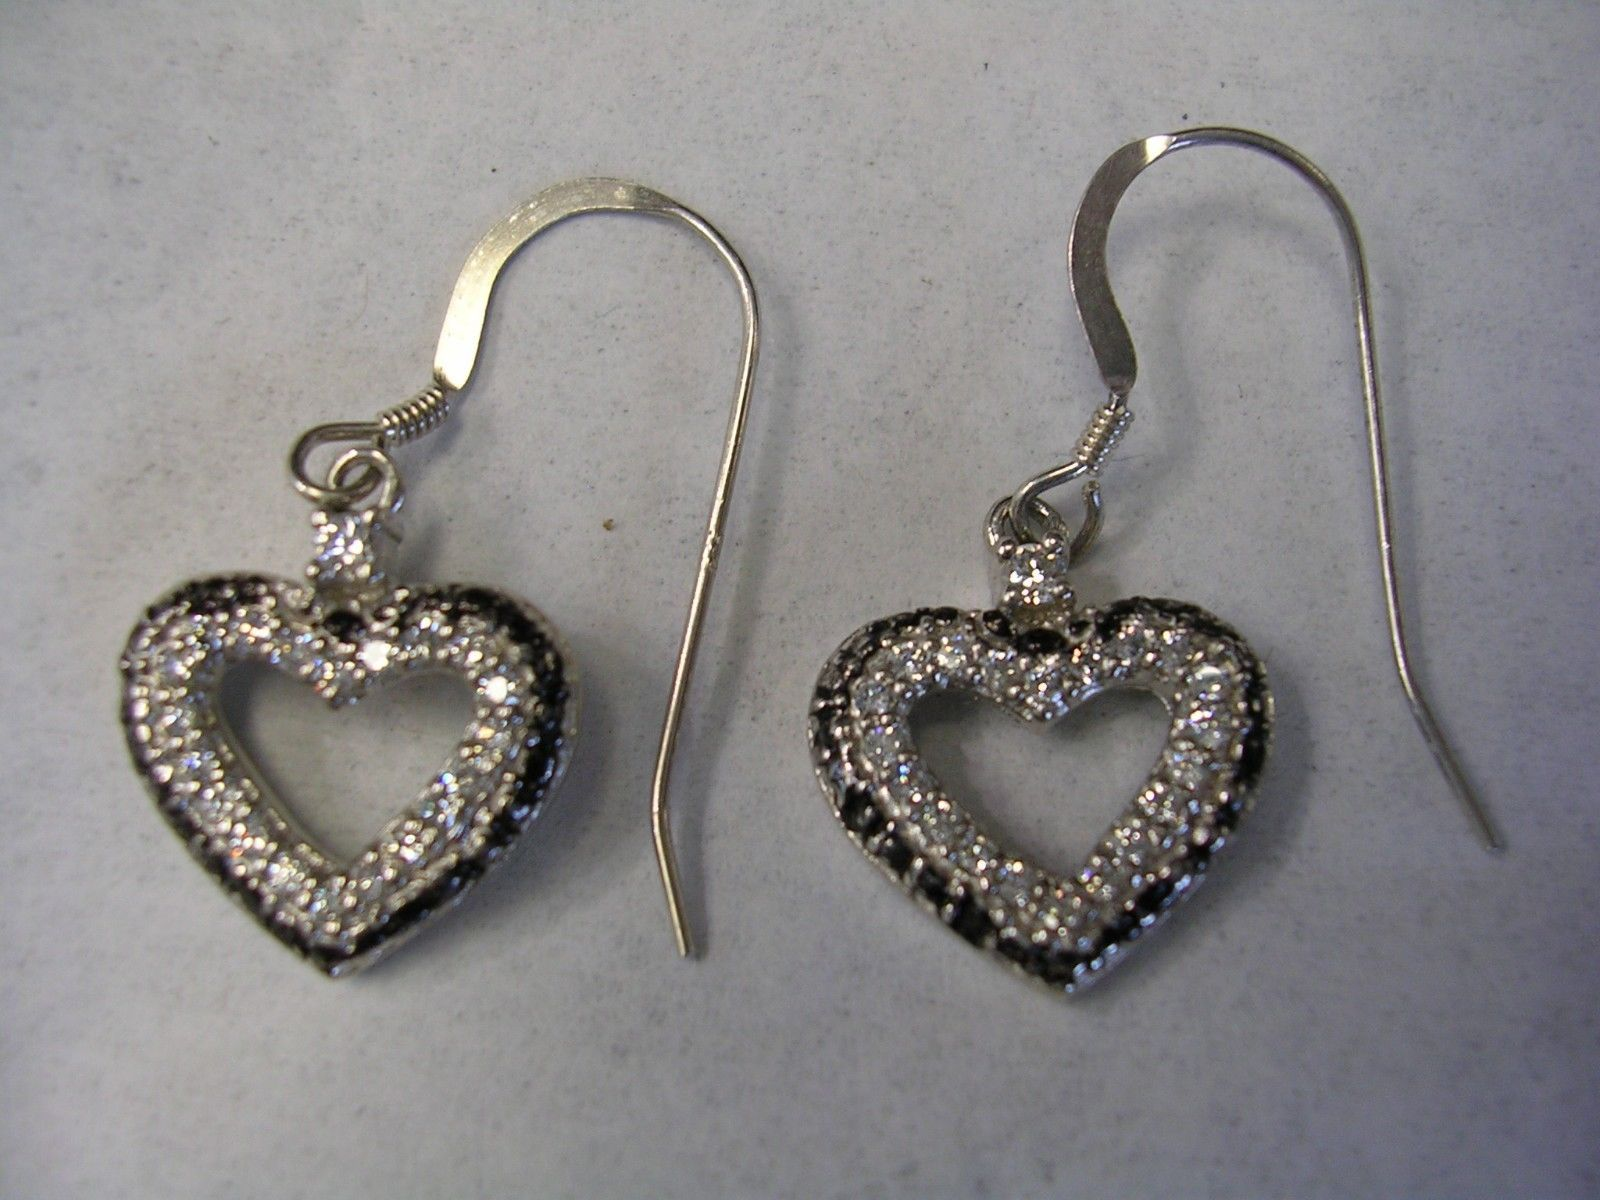 HEART EARRINGS WITH WHITE CUBIC ZIRCONIA AND BLACK ENAMEL IN STERLING SILVER